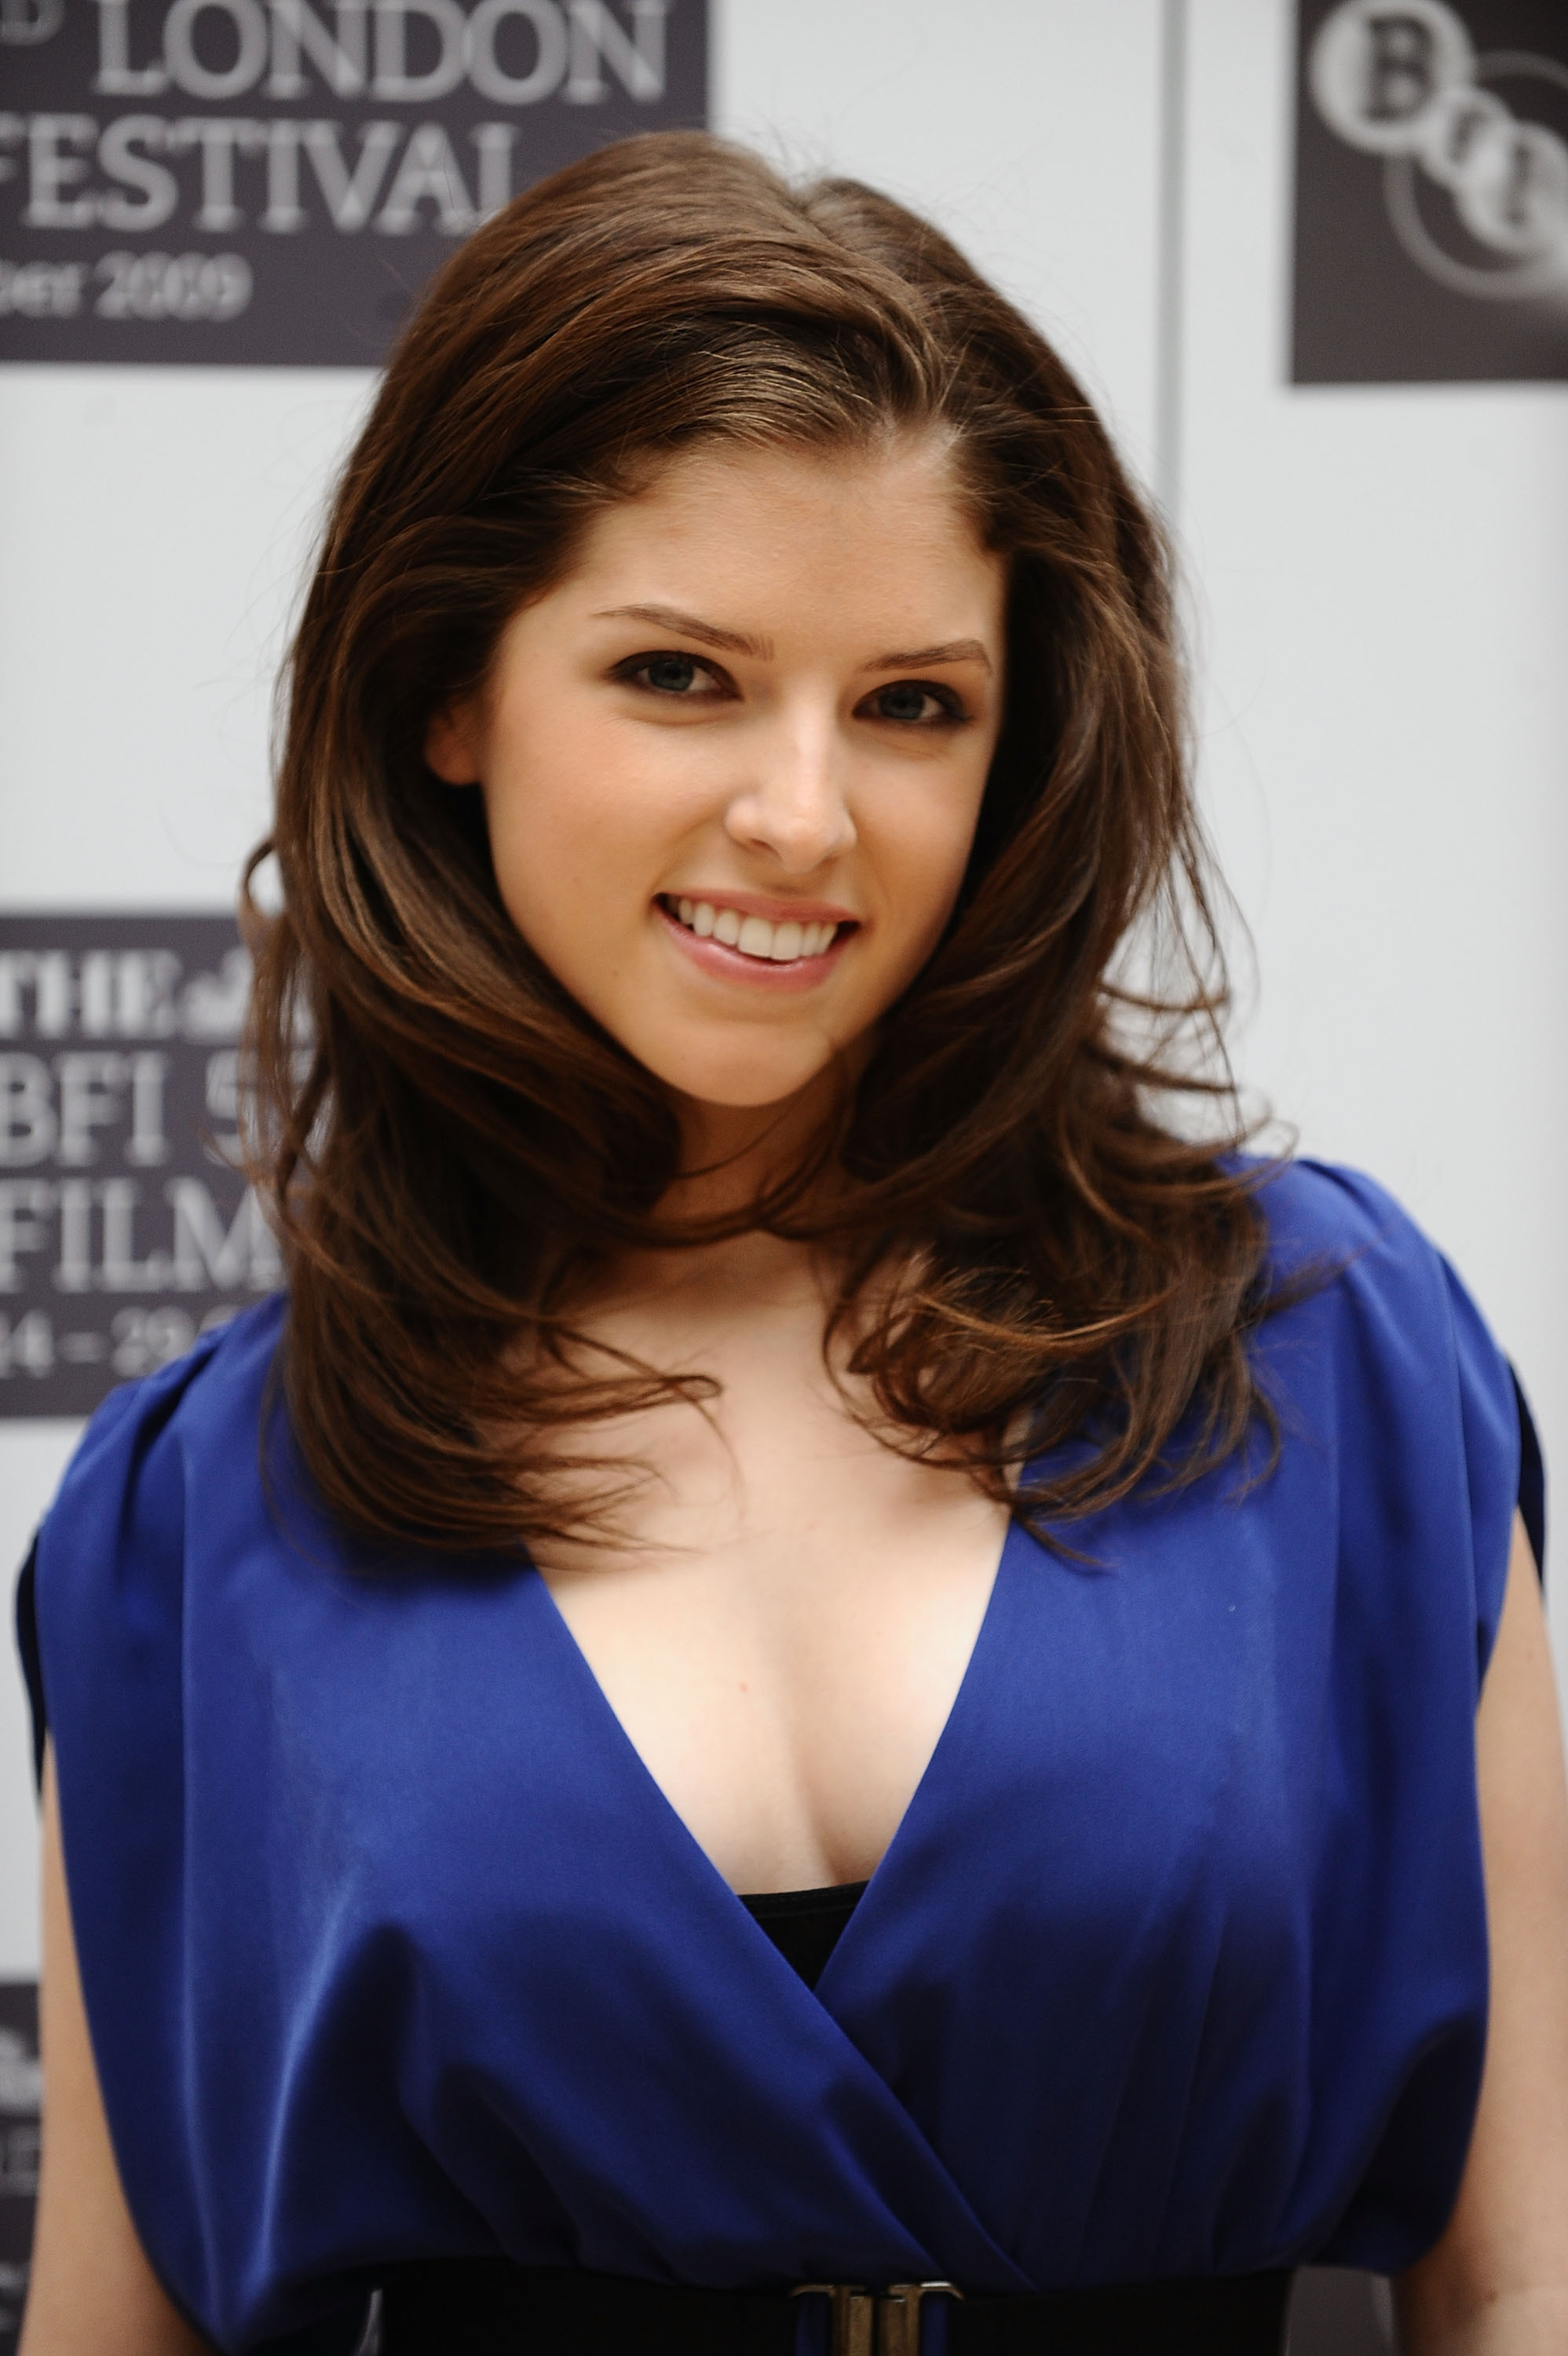 Anna Kendrick - Wallpaper